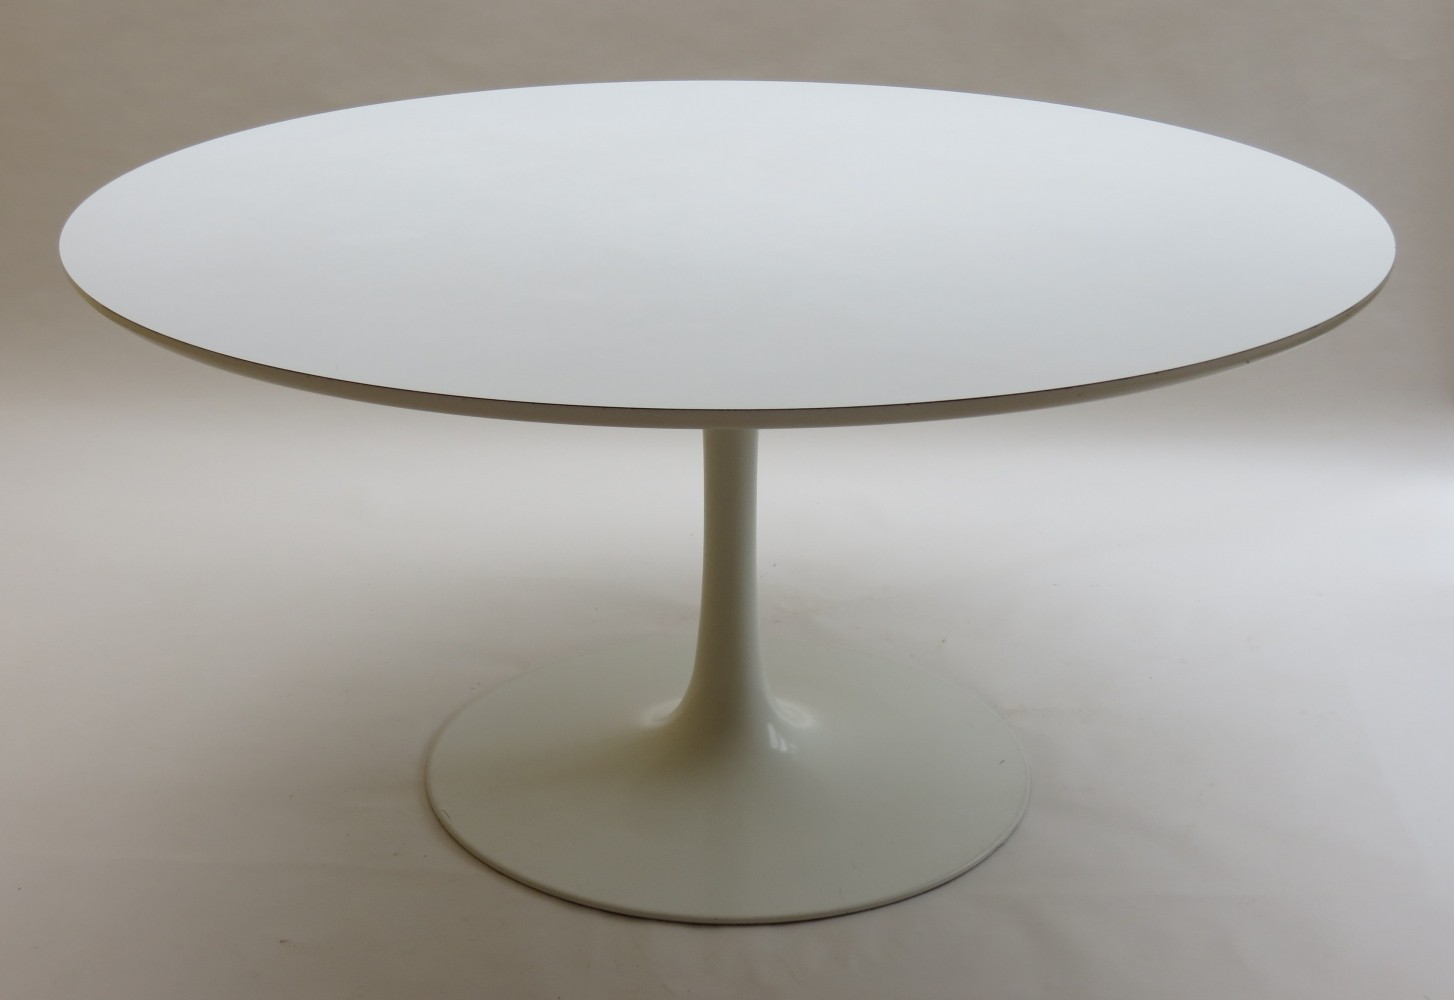 Tulip dining table by Maurice Burke for Arkana Of Bath 1960s 63588